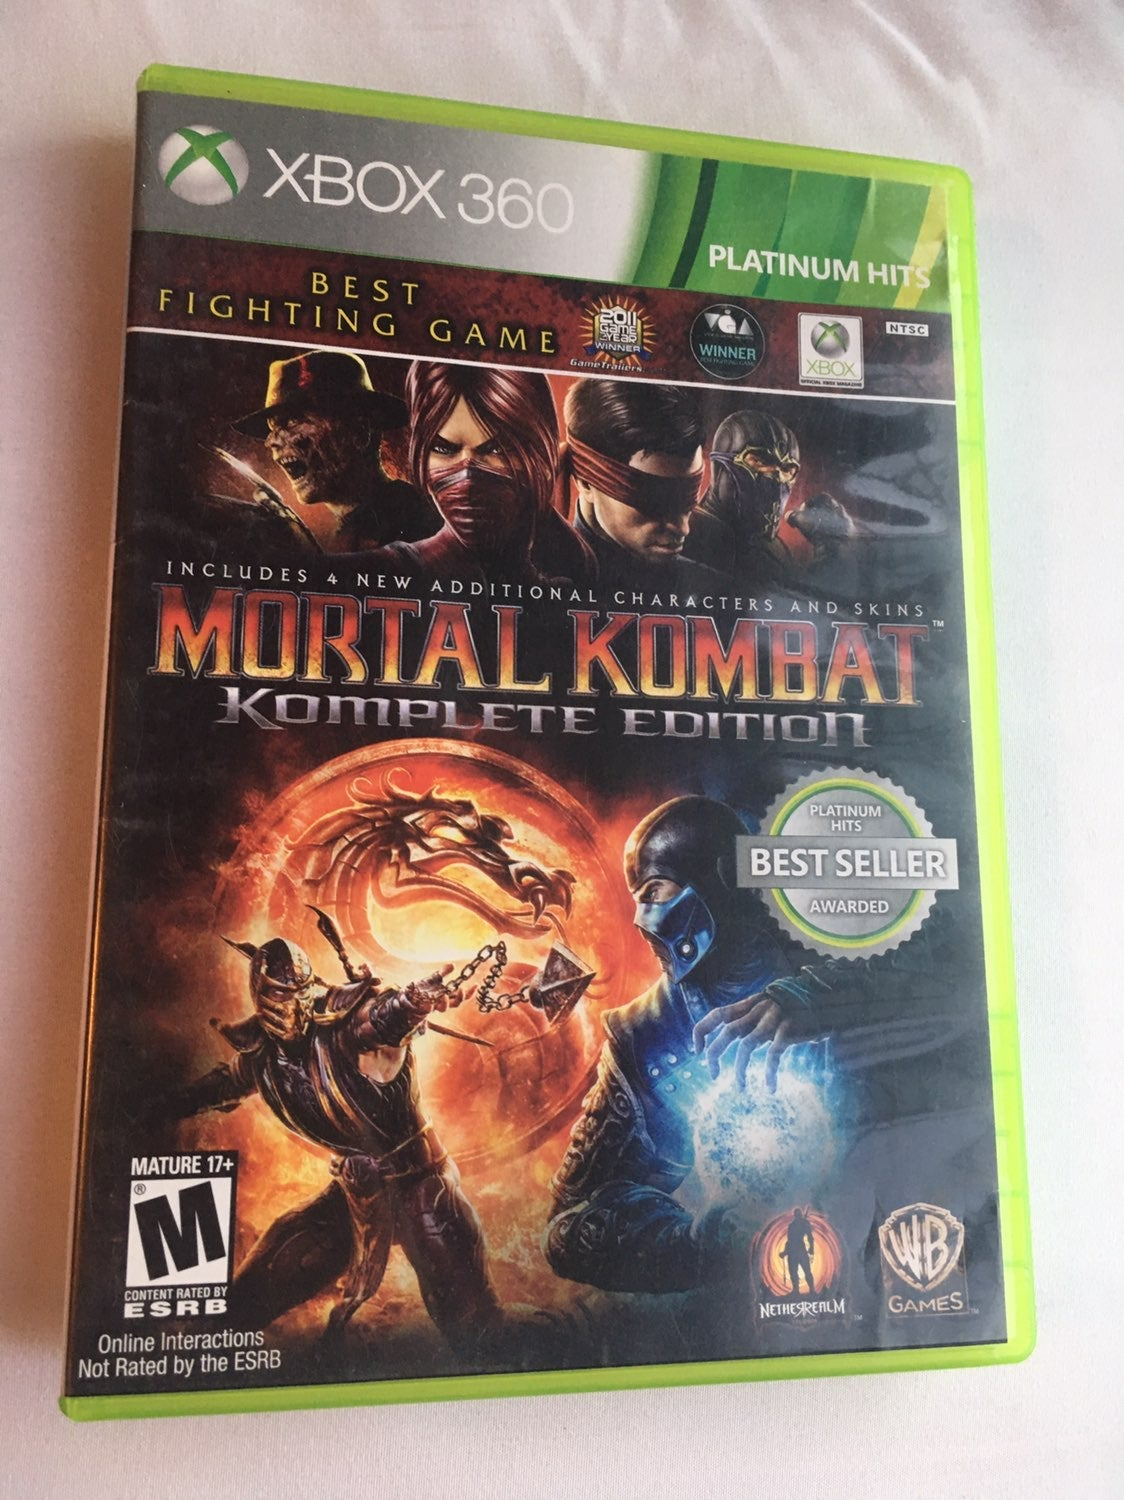 Mortal Kombat: Komplete Edition on Xbox